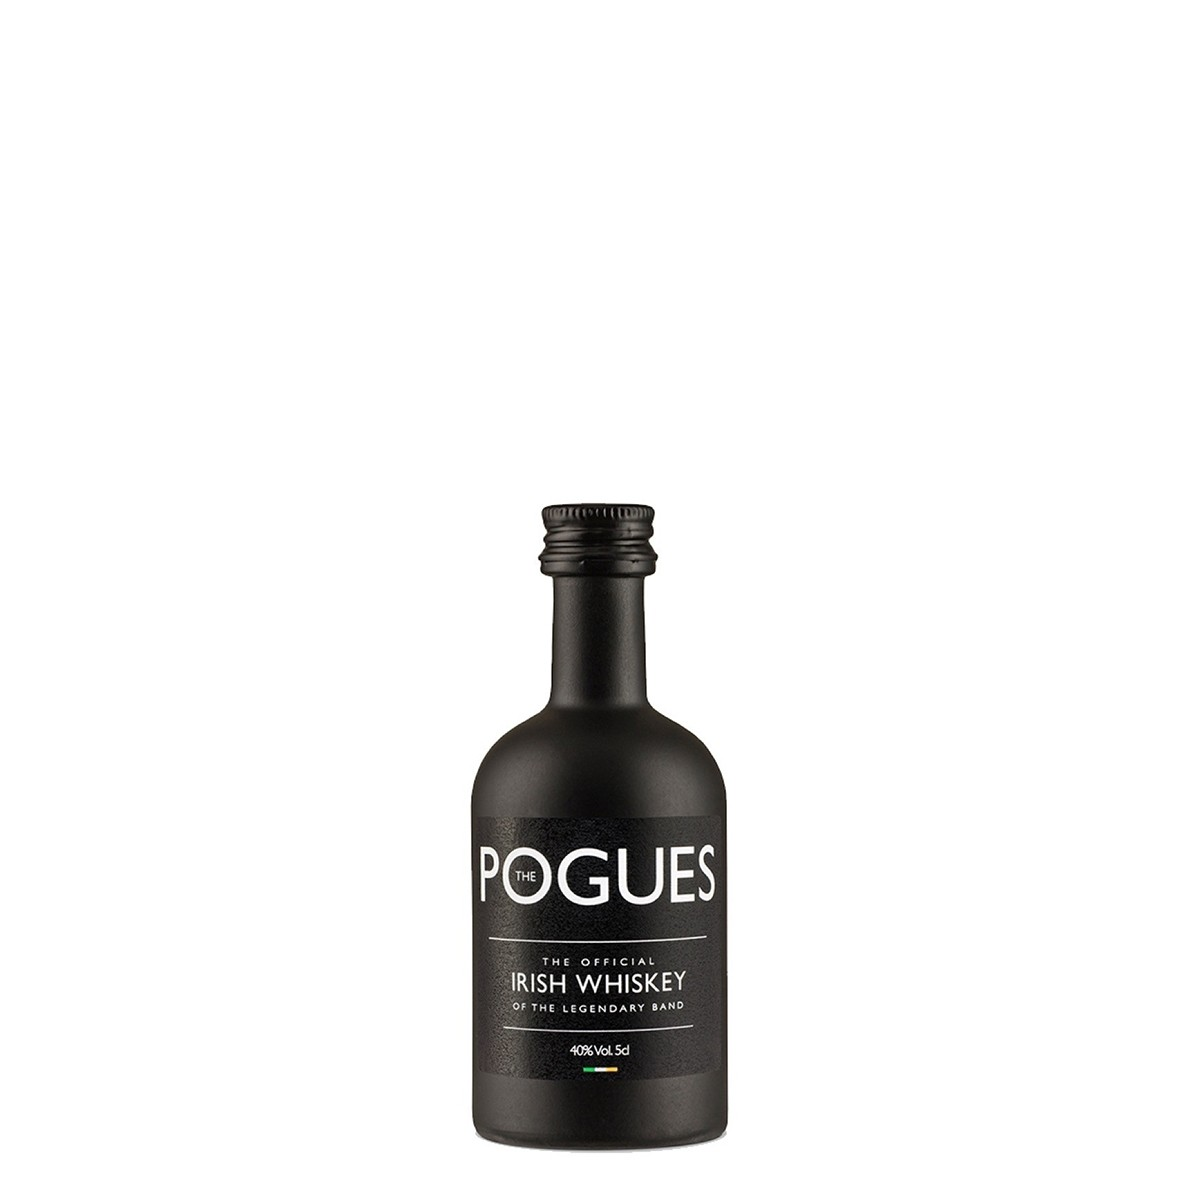 Pogues Irish Whiskey 50 ml